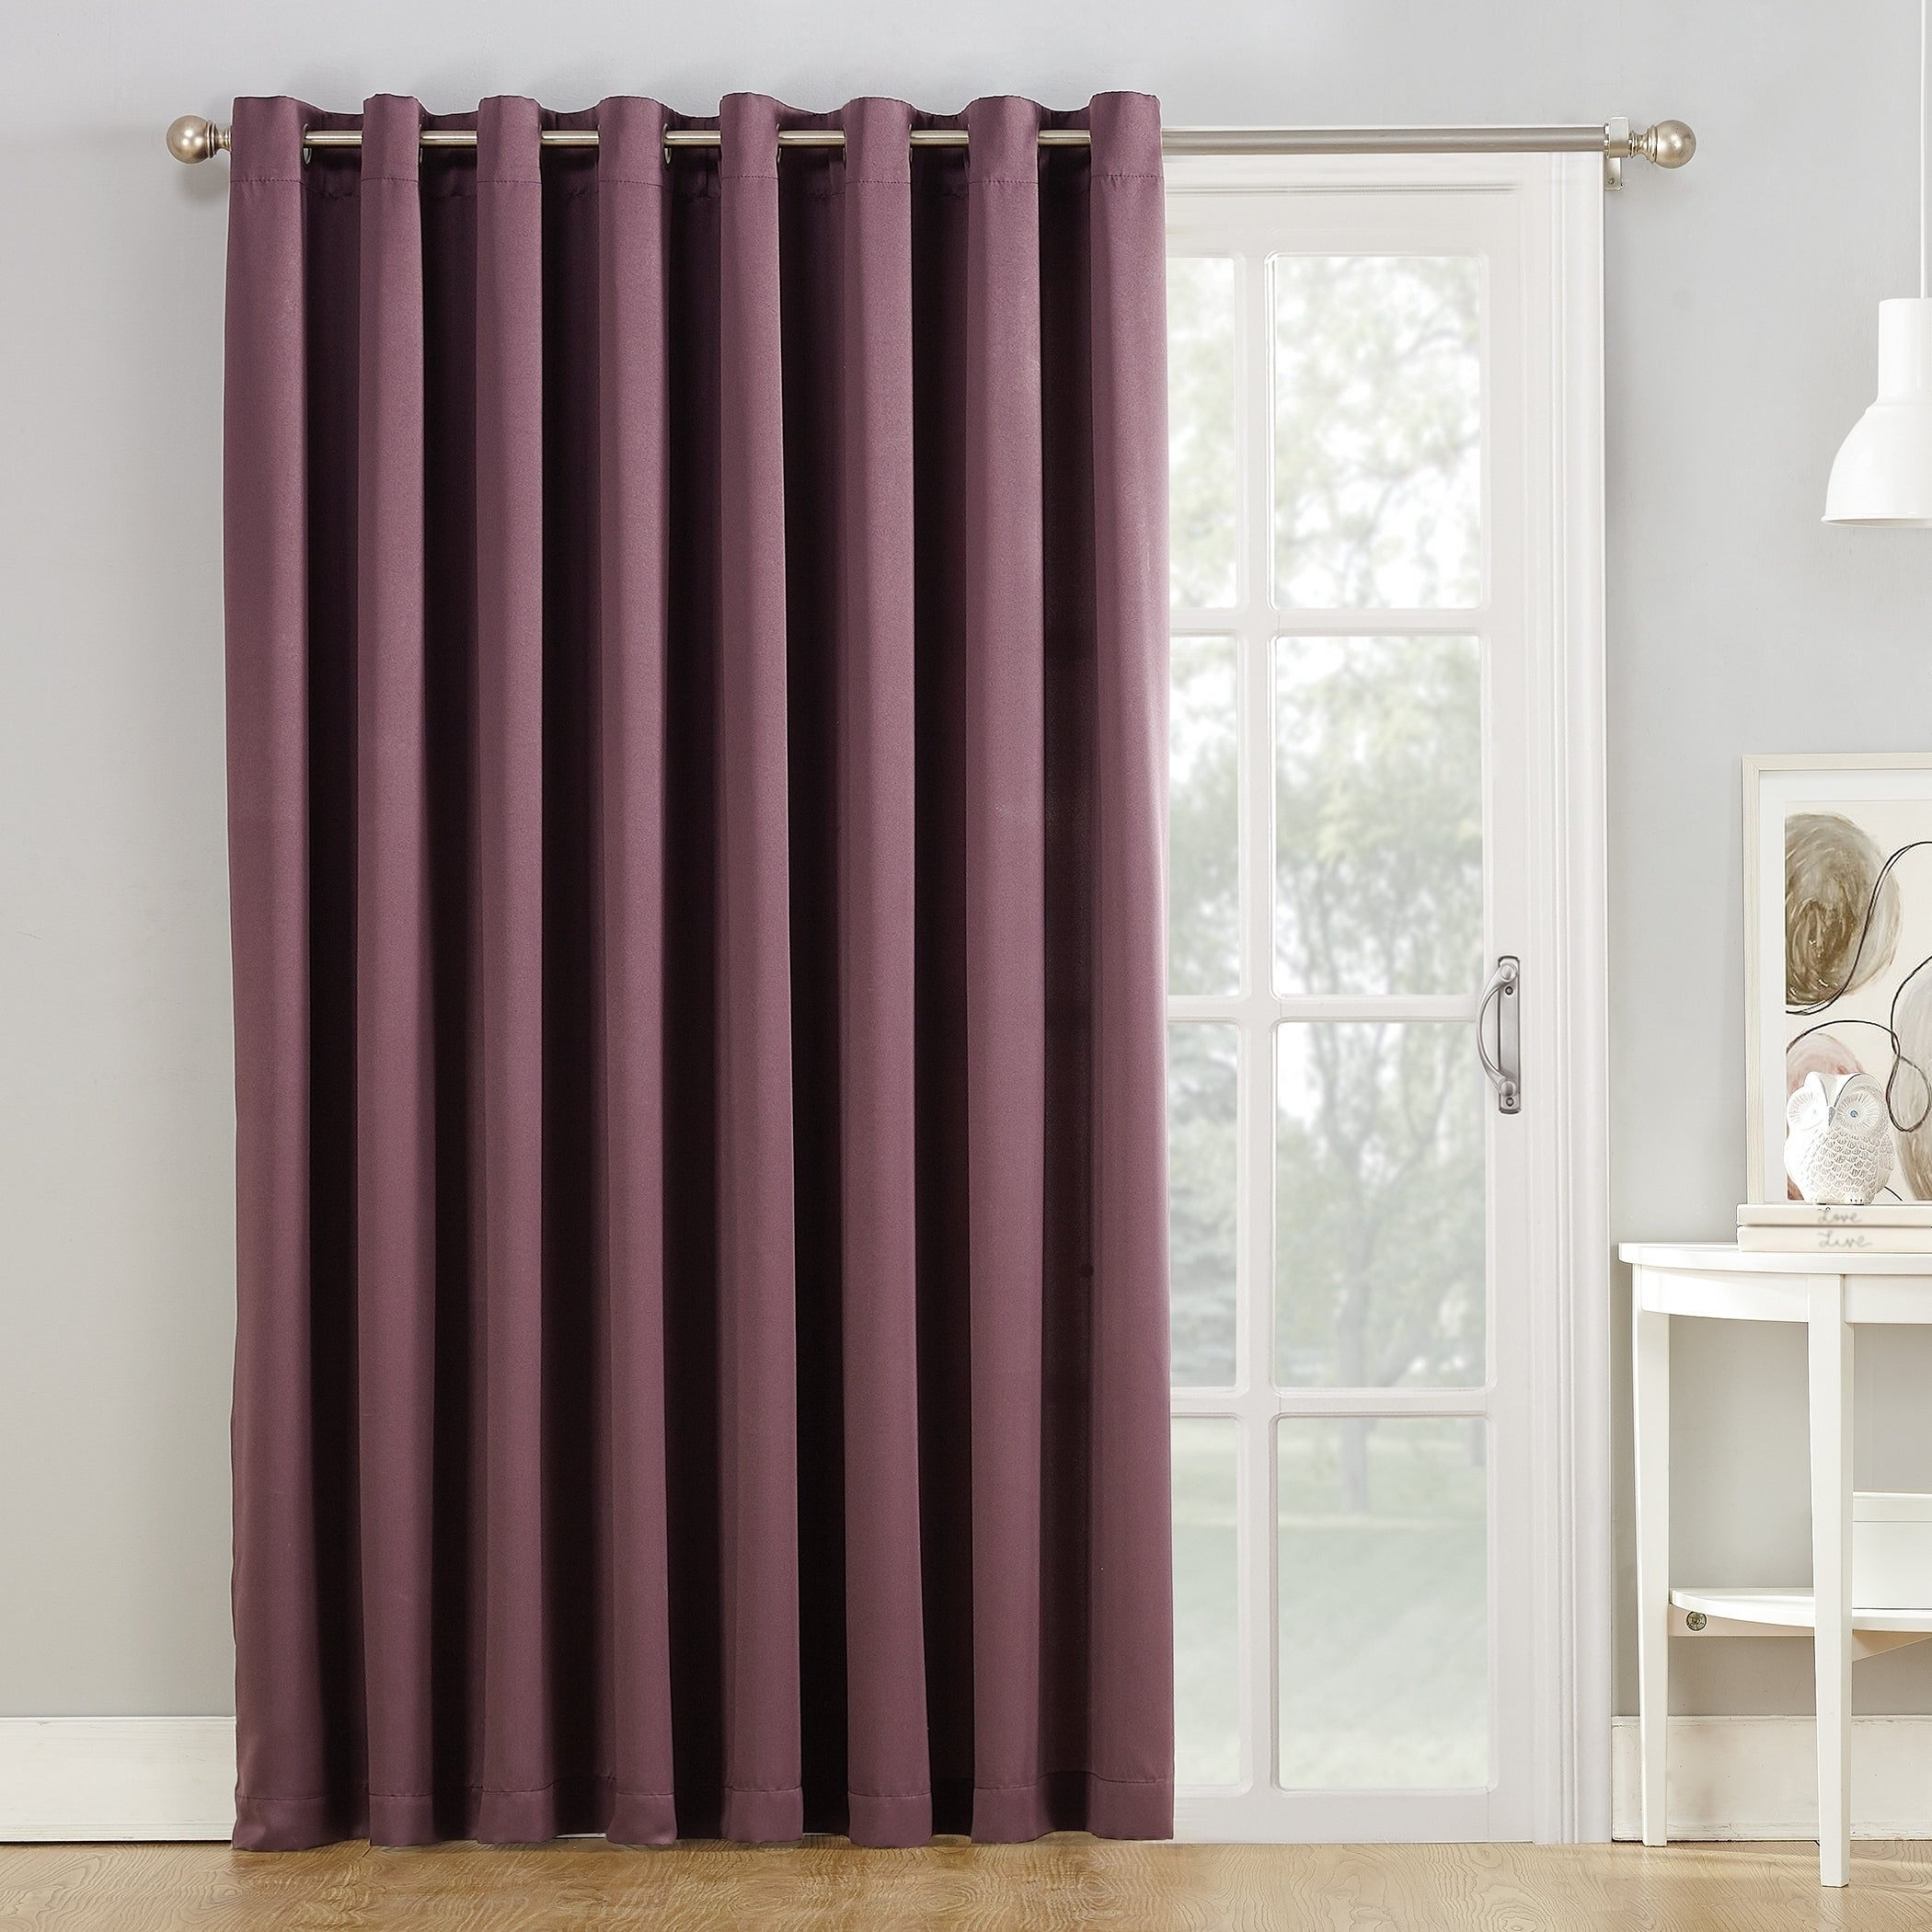 Porch & Den Nantahala Rod Pocket Room Darkening Patio Door Single Curtain Panel With Nantahala Rod Pocket Room Darkening Patio Door Single Curtain Panels (View 4 of 20)